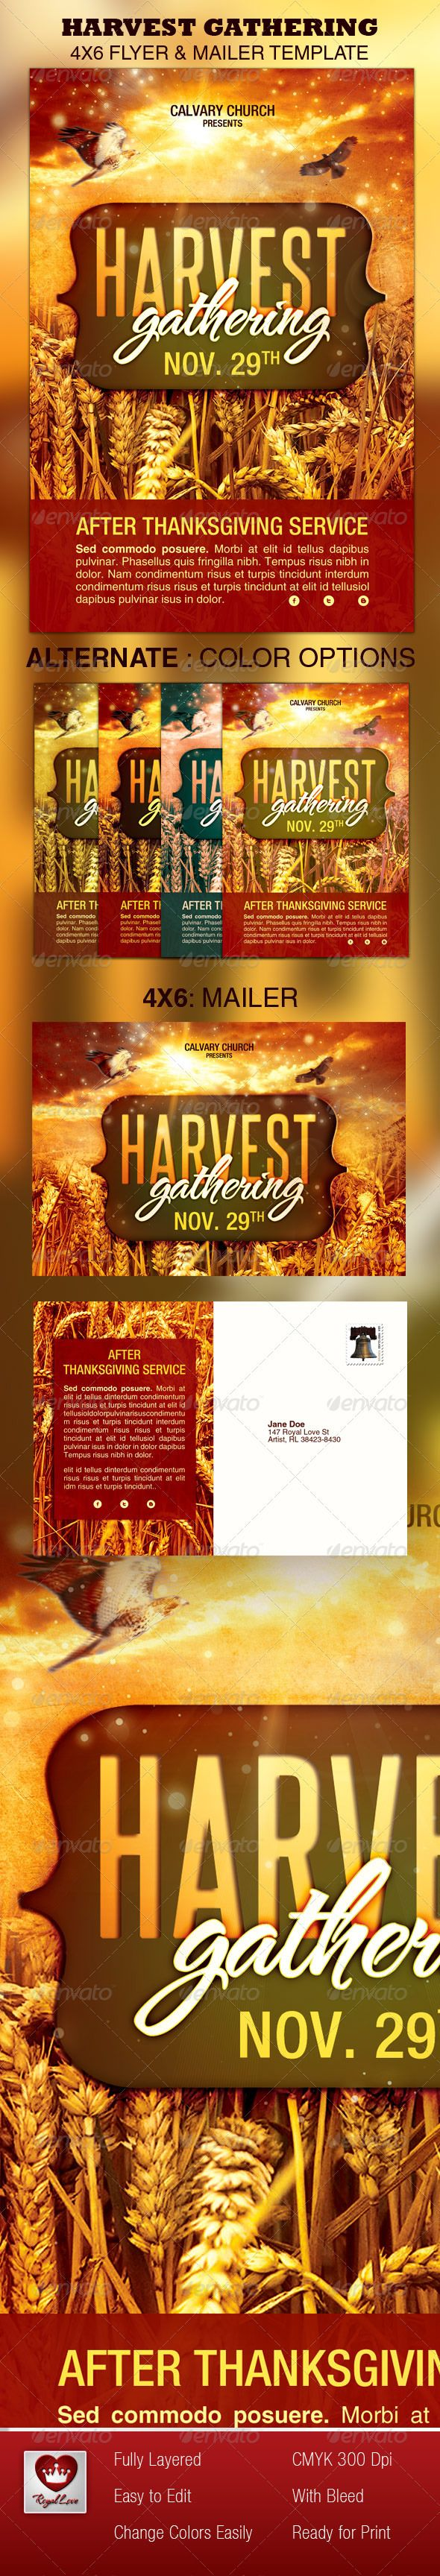 Harvest Gathering Church Flyer  Mailer Template Creative Designs